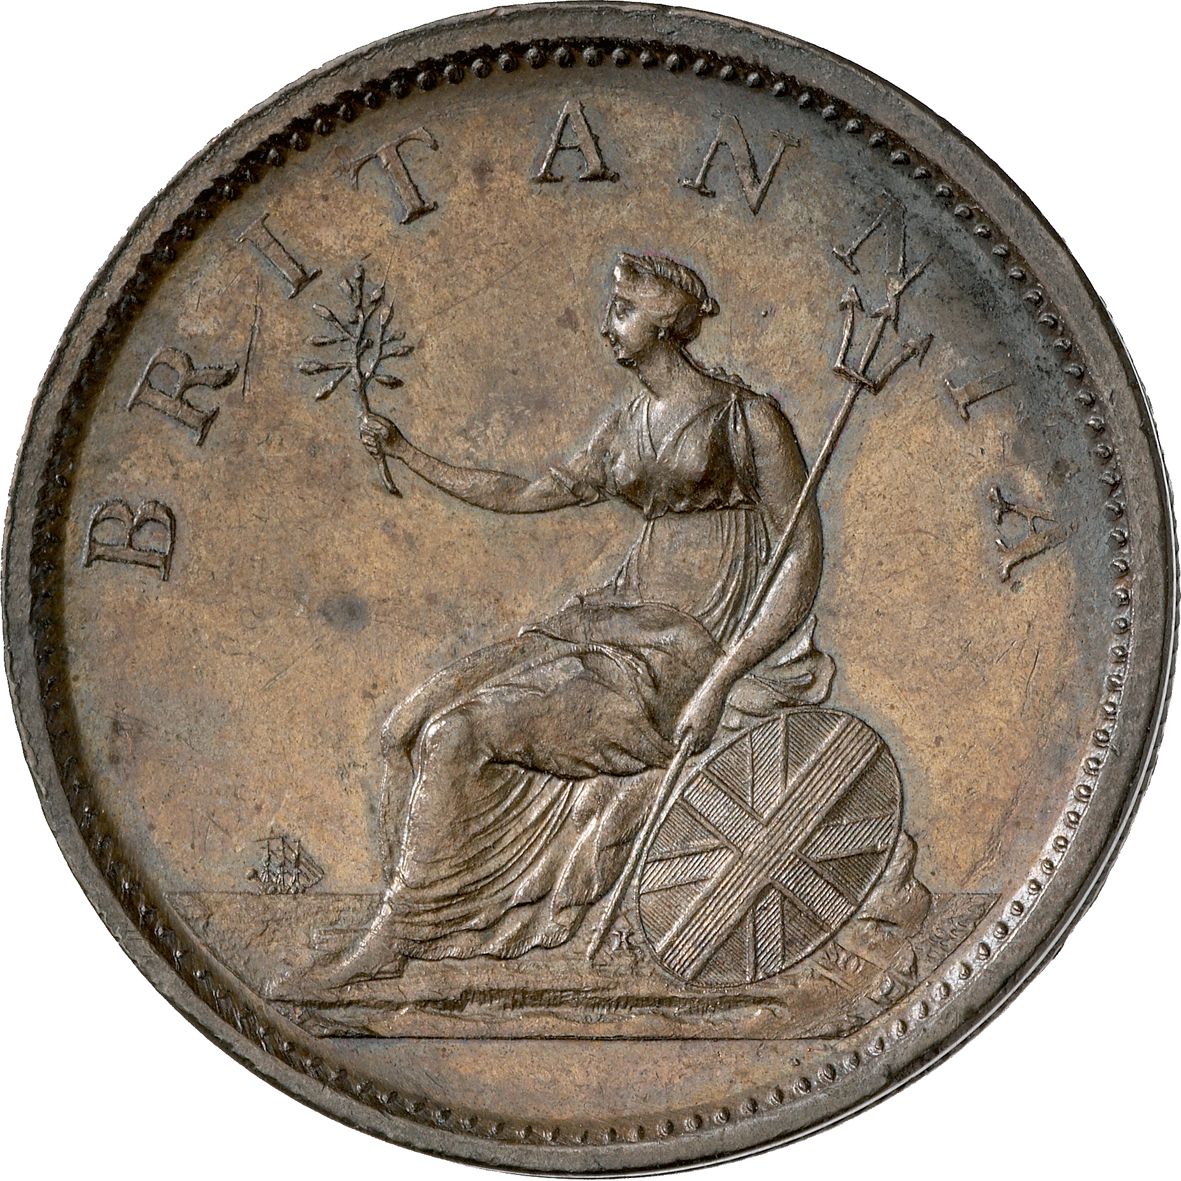 United Kingdom of Great Britain, George III, Penny 1806 (reverse)